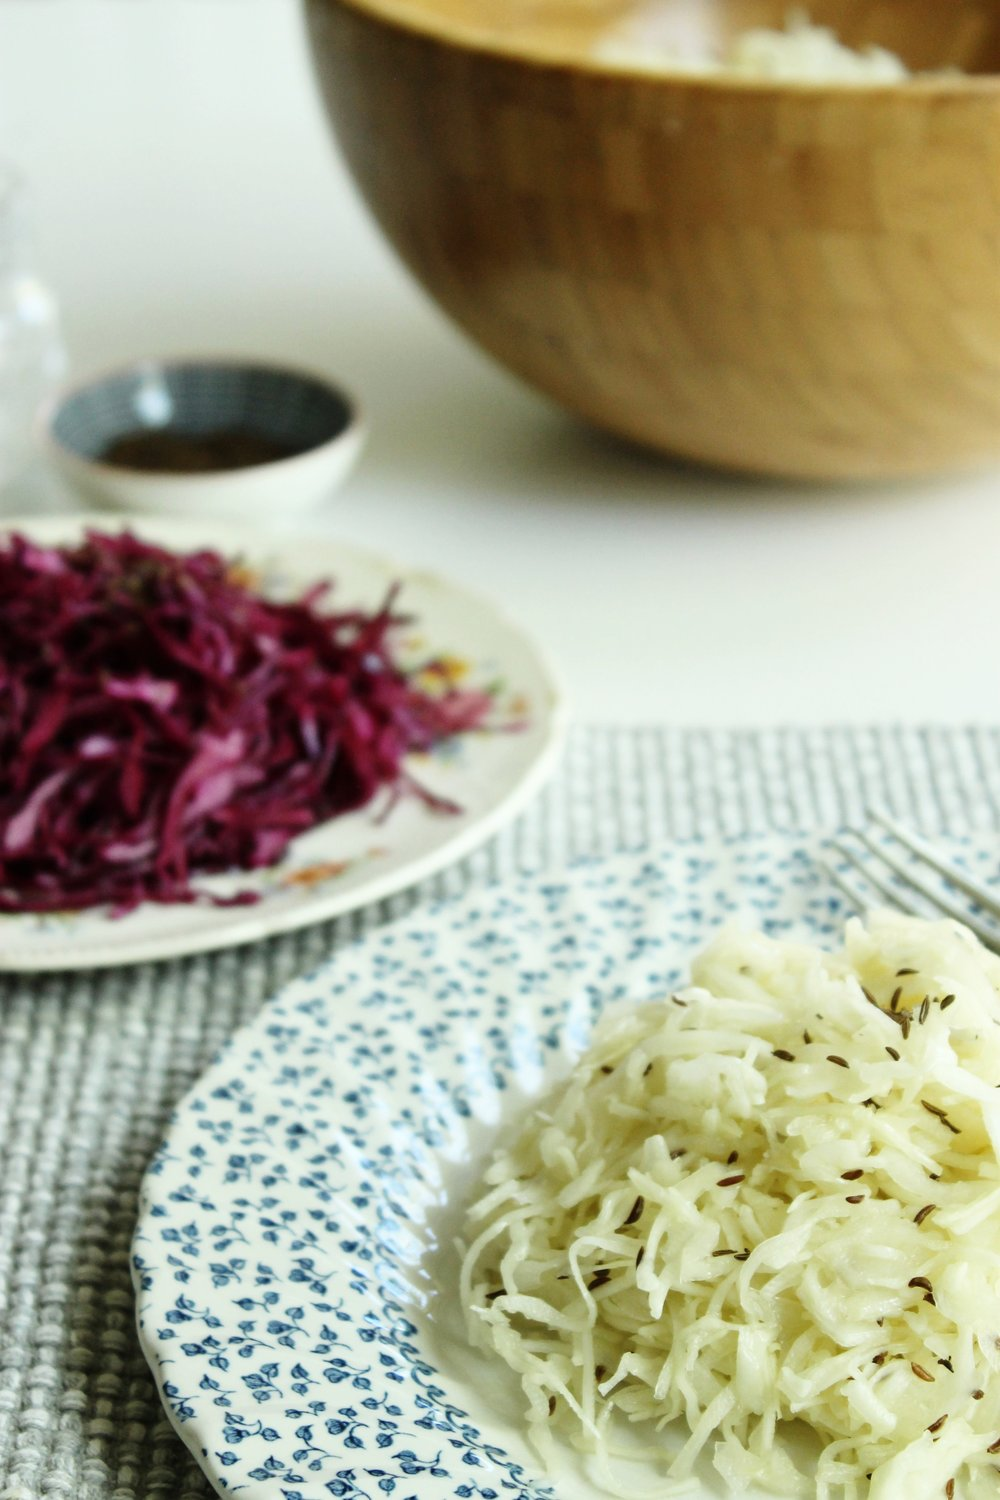 South Tyrolean cabbage salad ('Krautsalat') | Beloved Kitchen